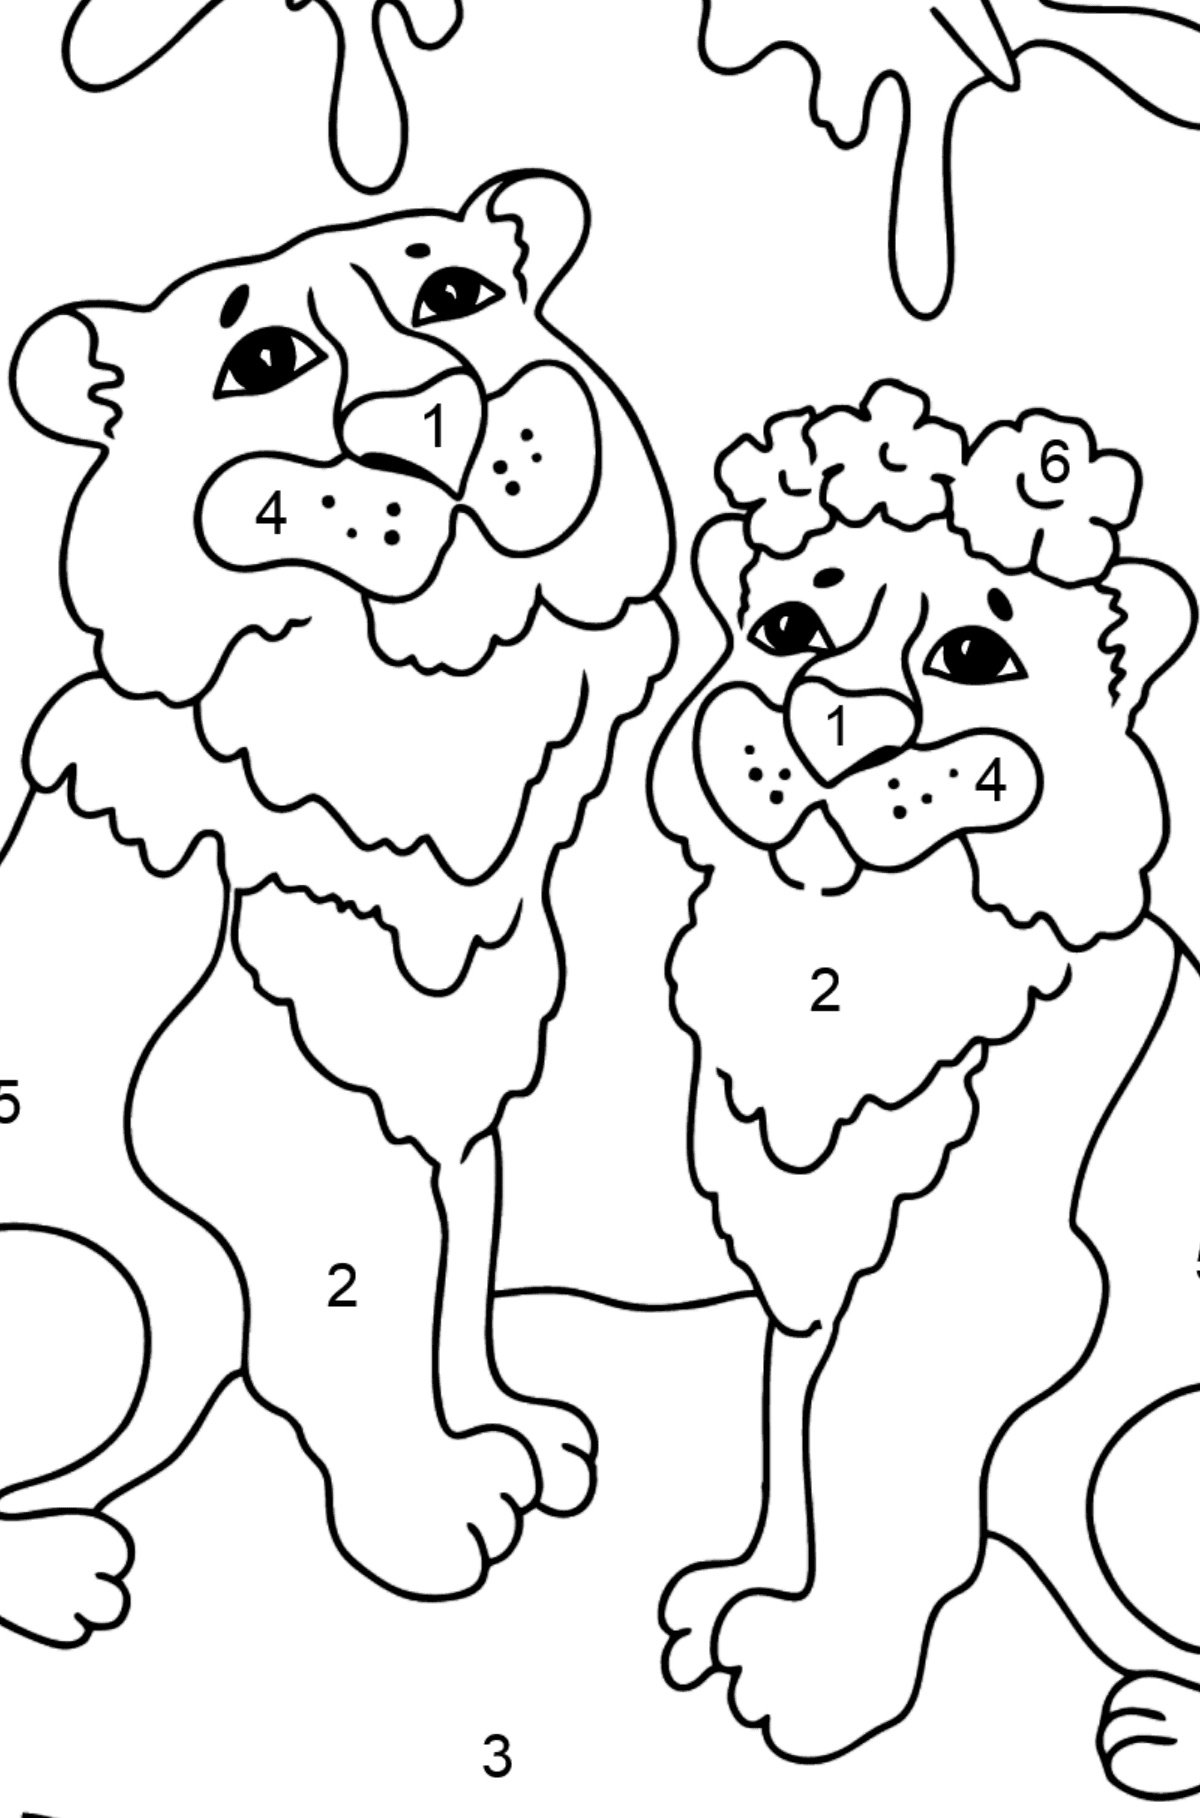 Coloring Page - A Tiger with a Tigress - Coloring by Numbers for Kids